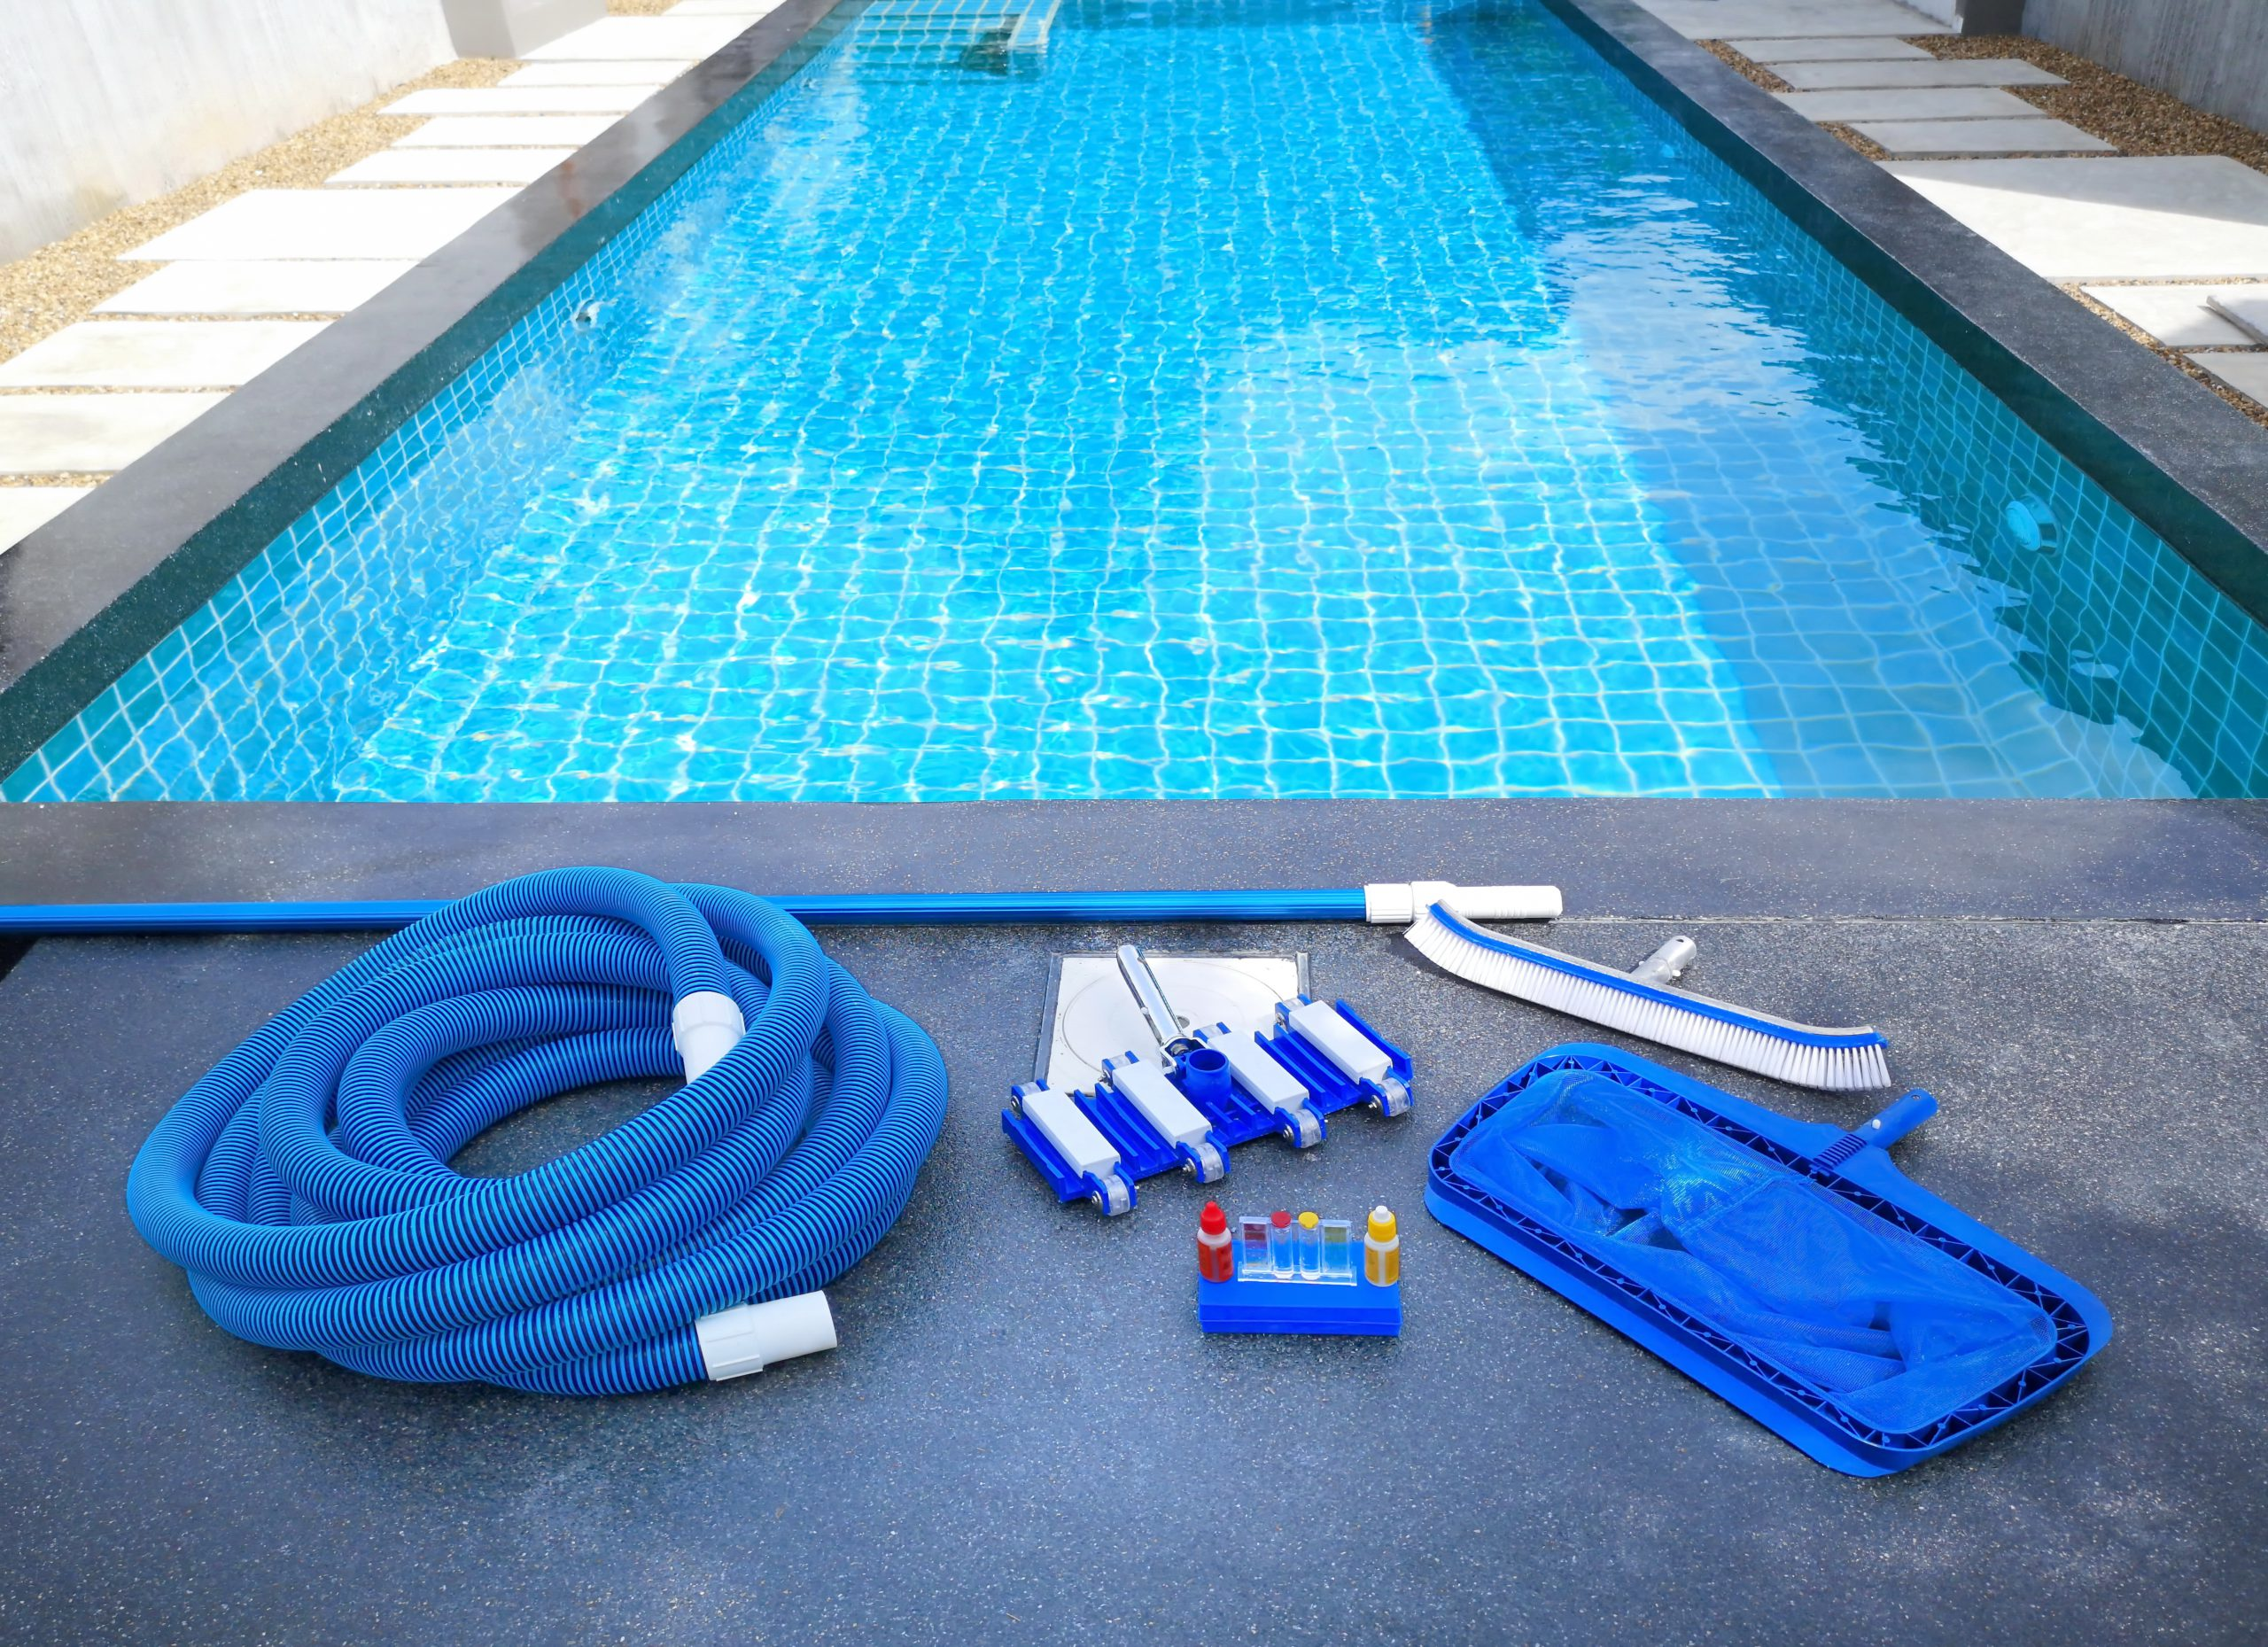 4 Qualities Of The Best Pool Cleaning Service